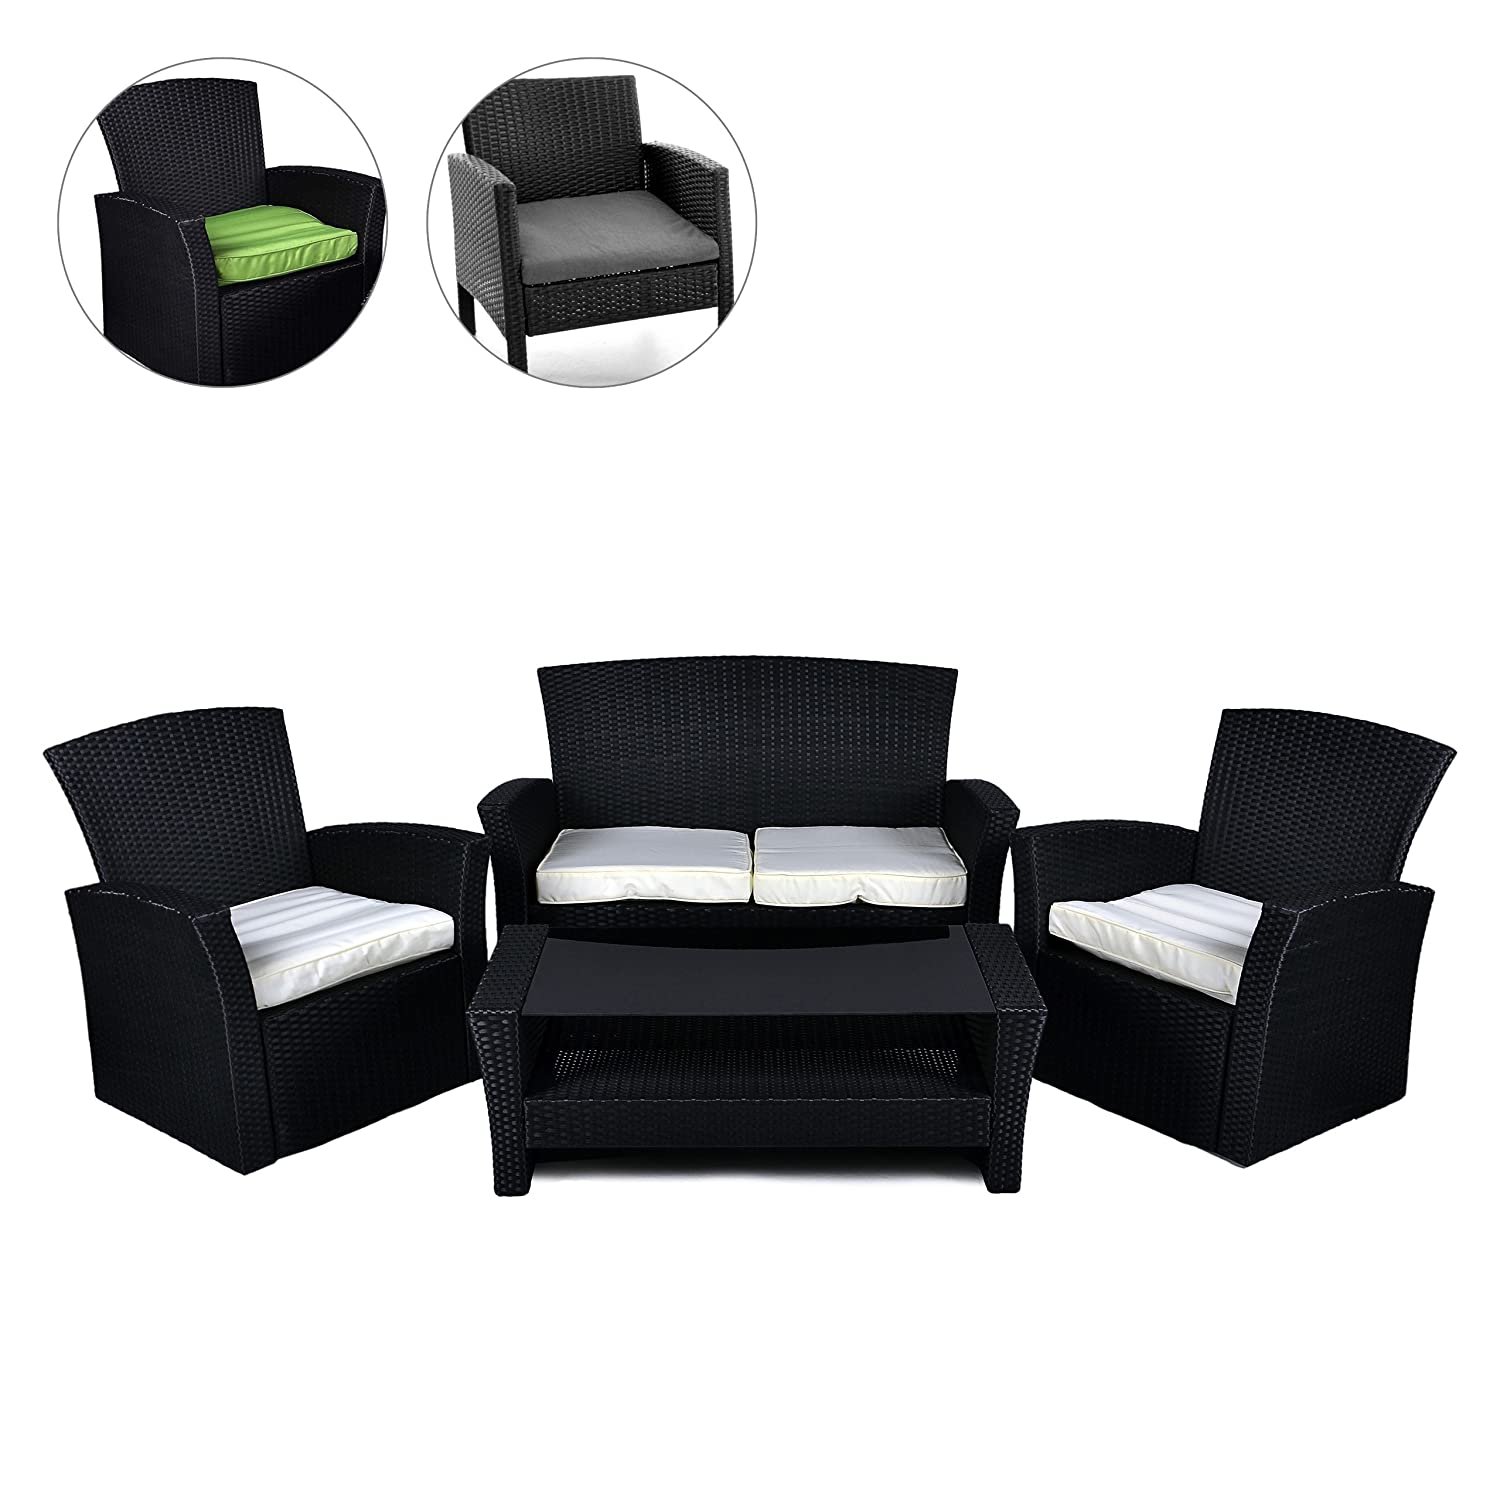 rattan set 4tlg mit glastisch wei garnitur gartenm bel sitzgruppe poly rattan inkl. Black Bedroom Furniture Sets. Home Design Ideas